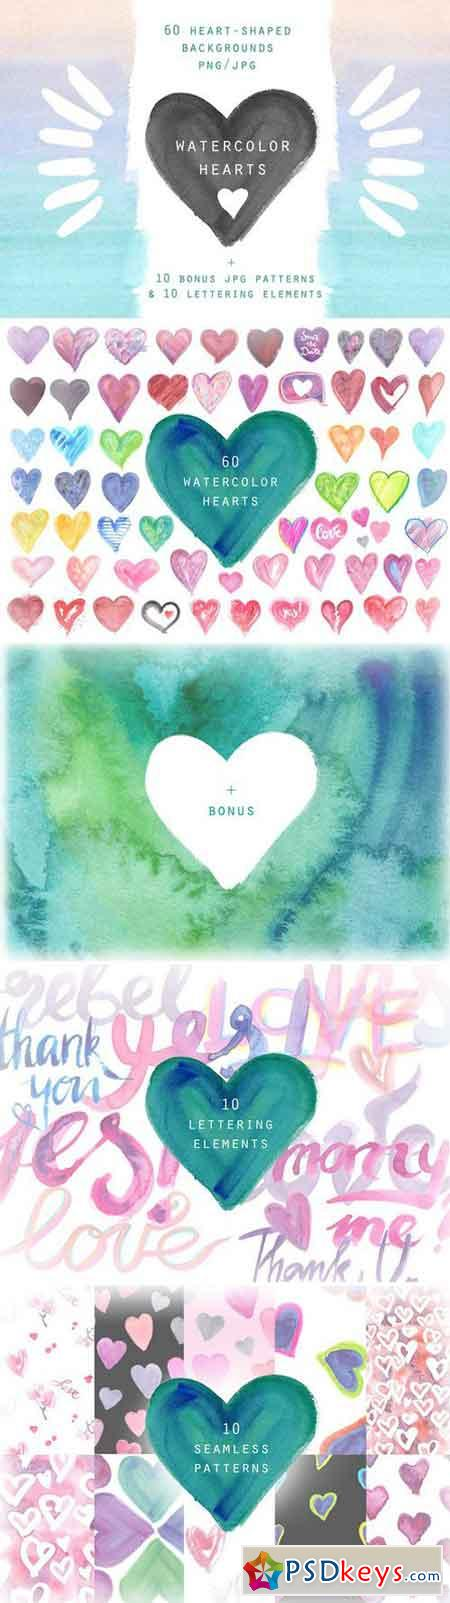 Watercolor hearts Background set 2356545